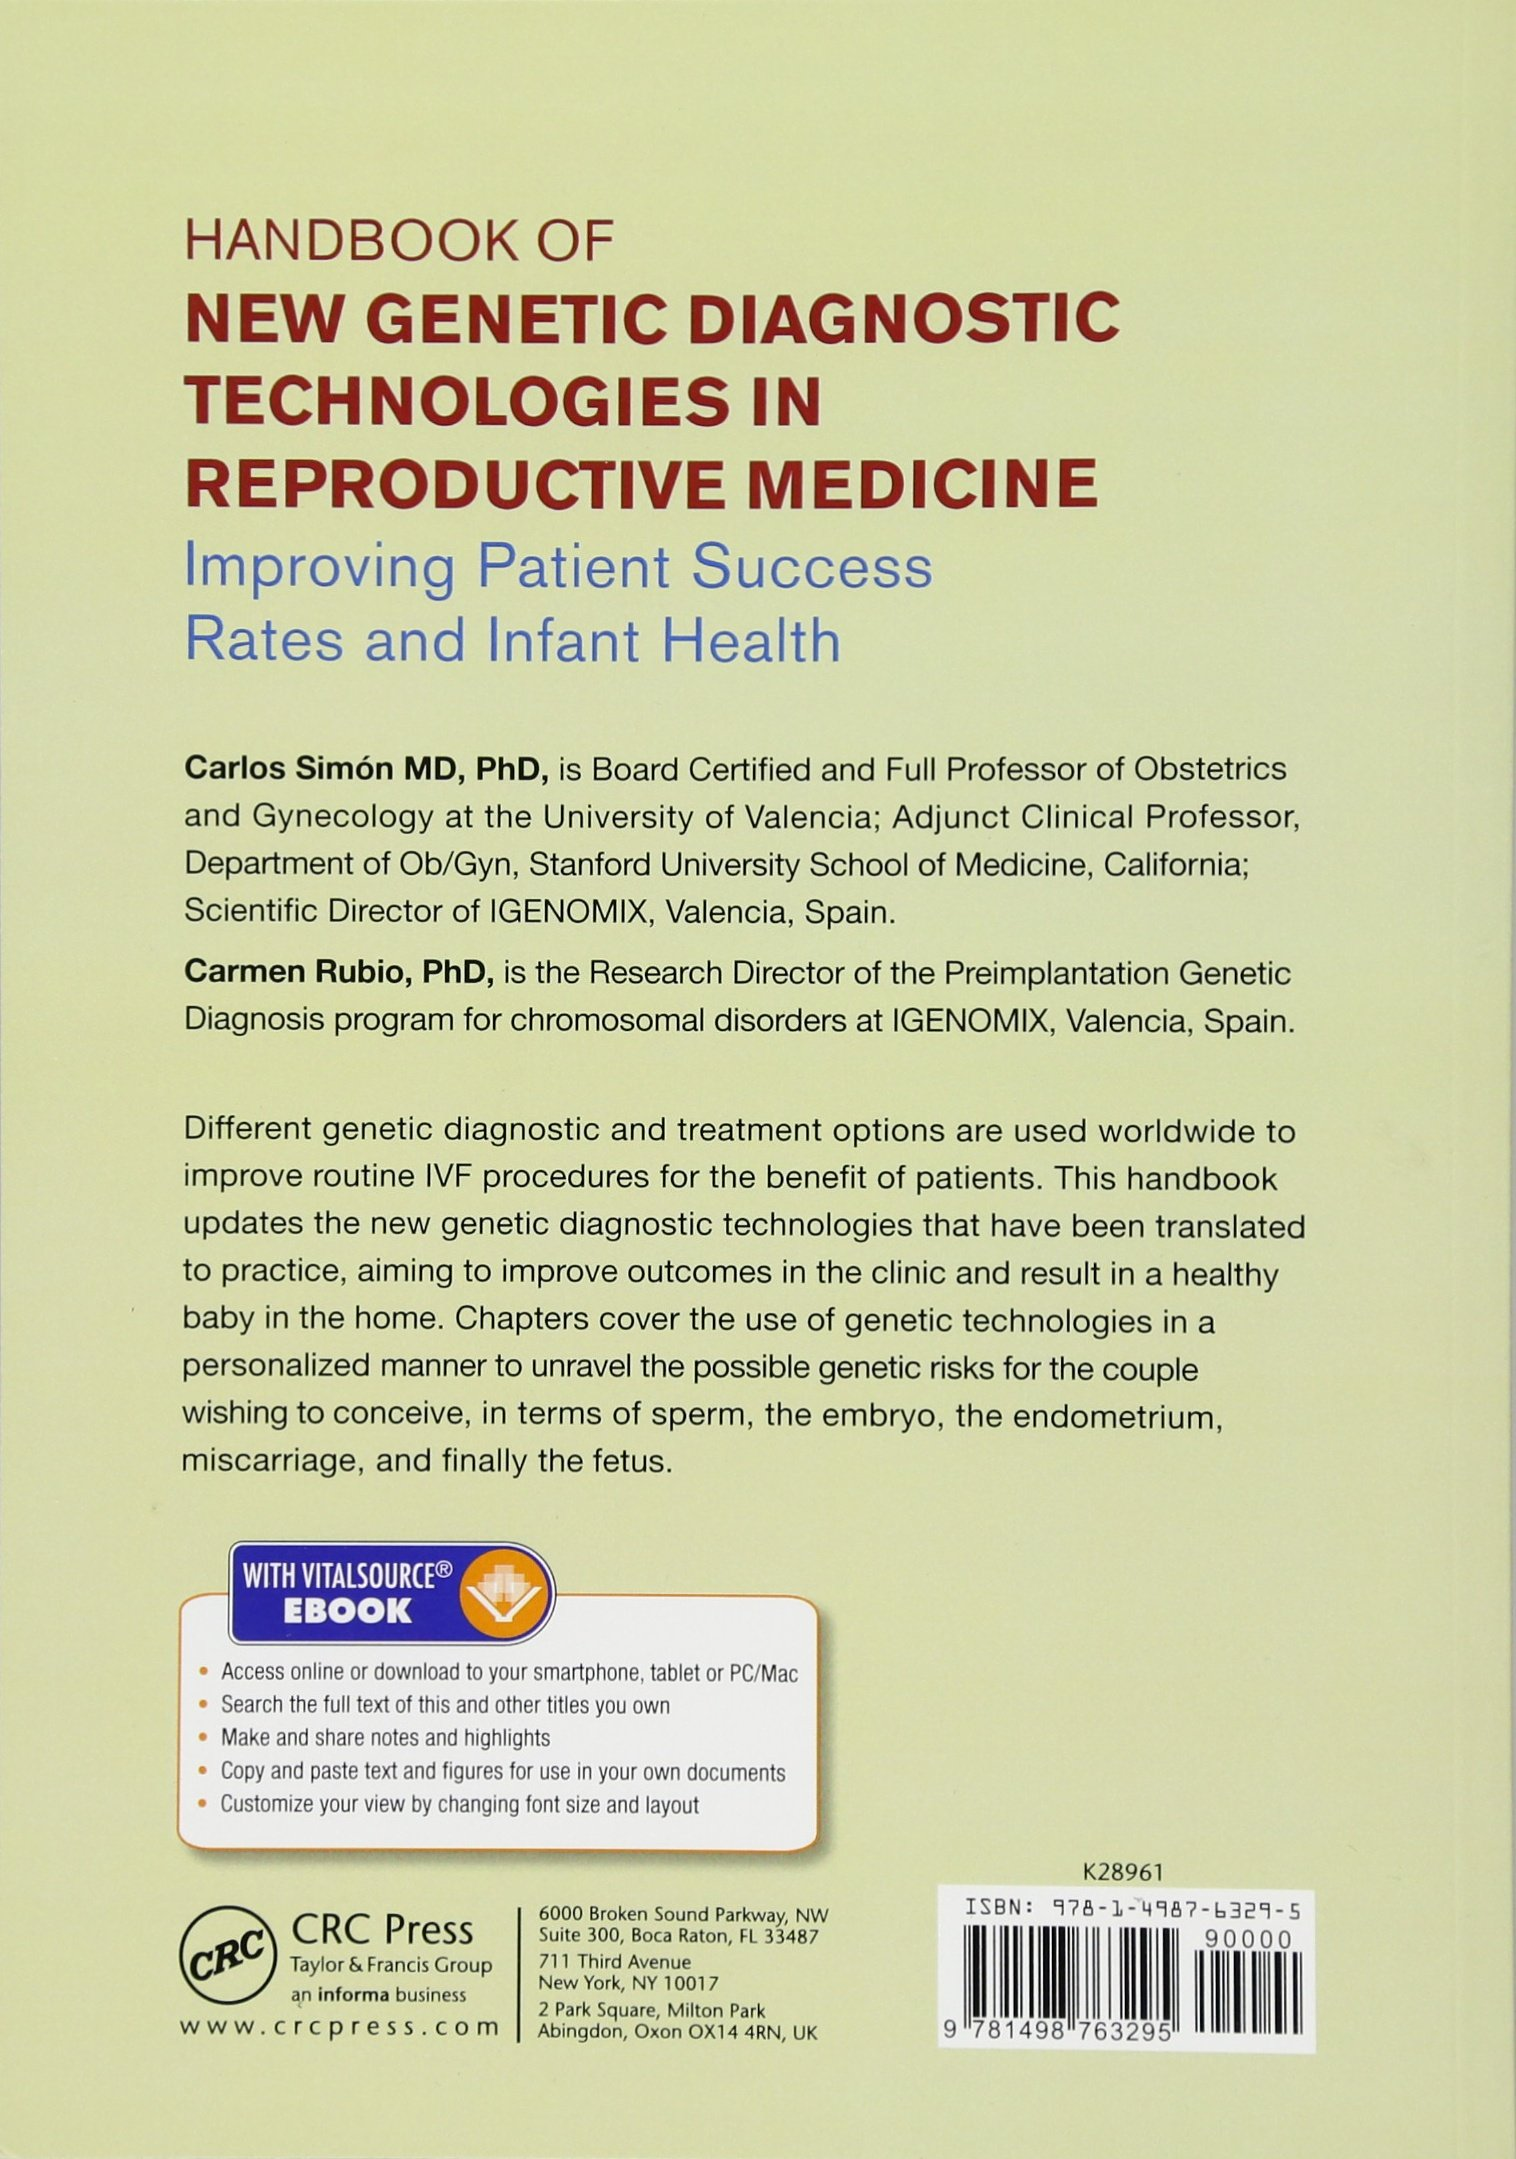 Buy Handbook of New Genetic Diagnostic Technologies in